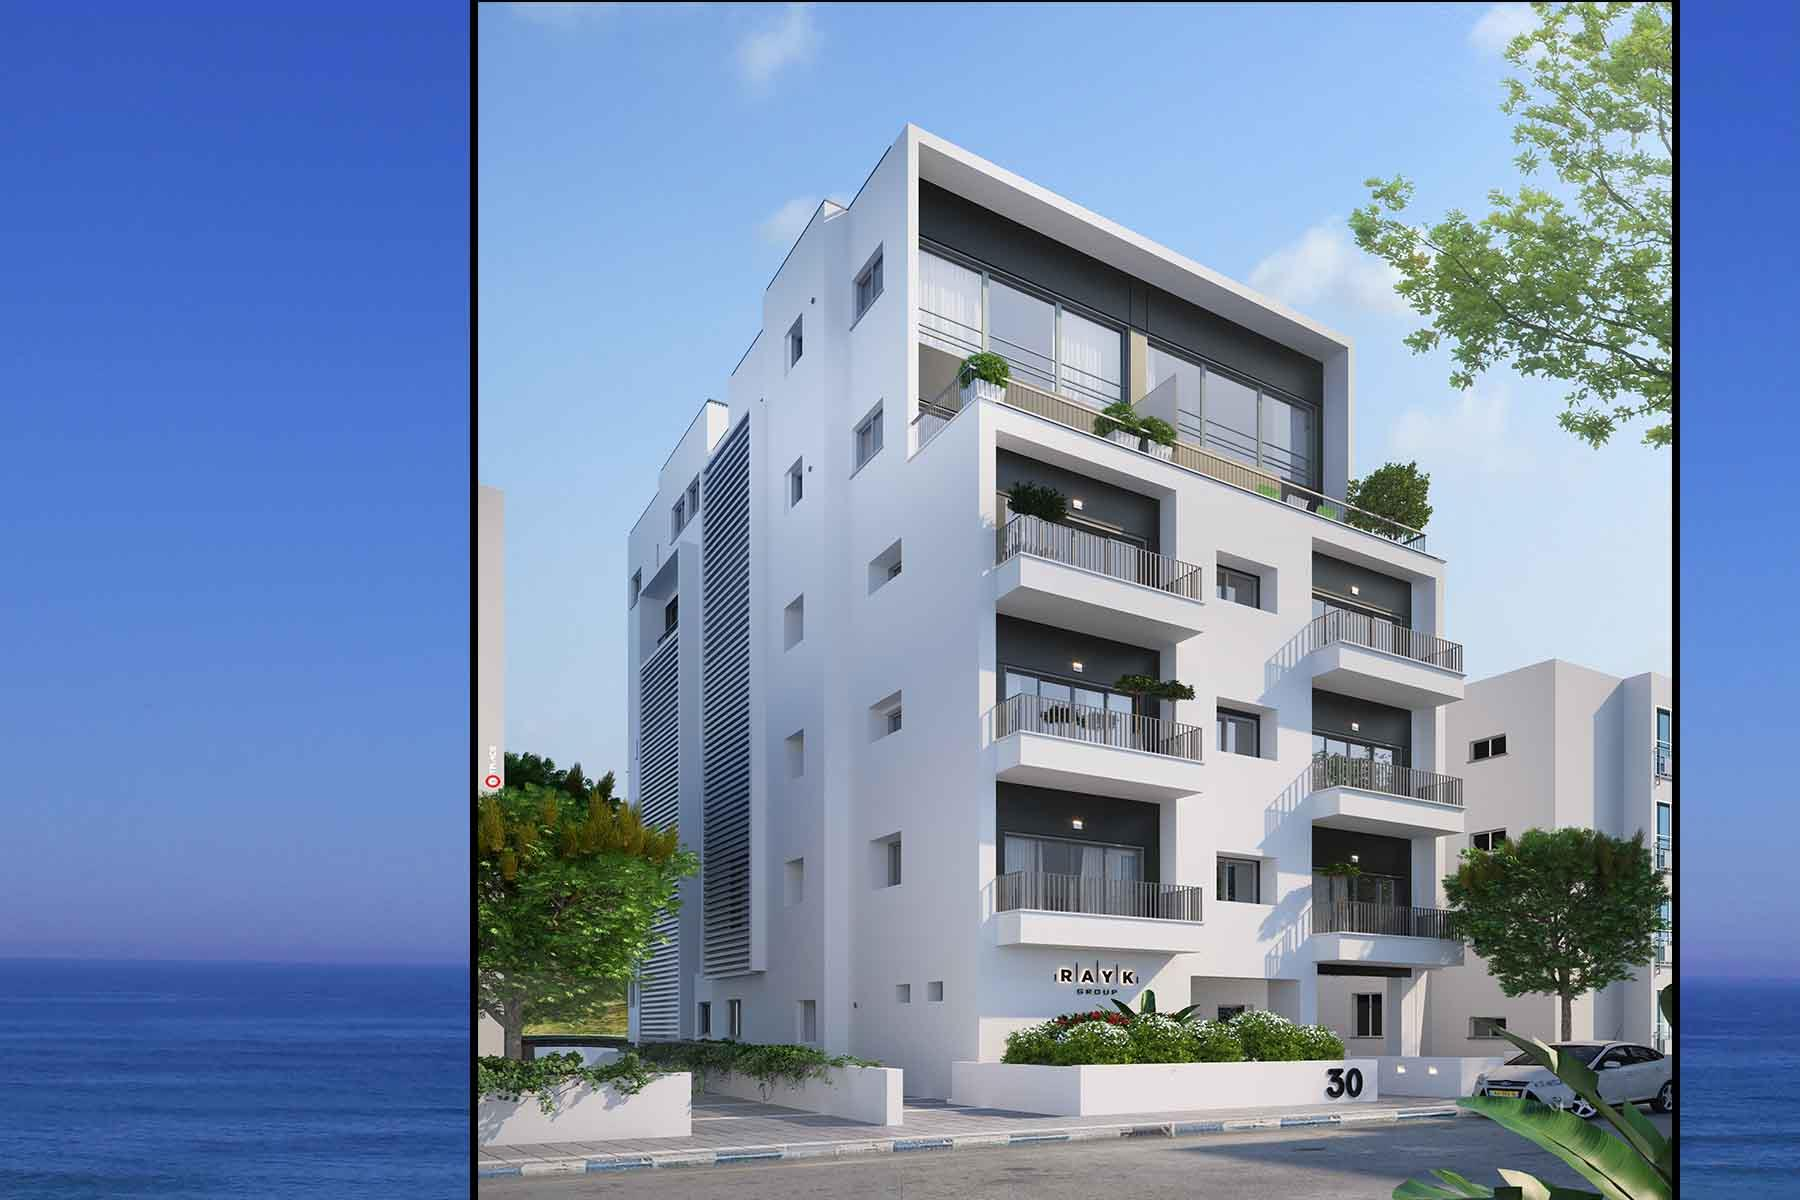 'Apartments / Flats' building or community at 'Refined New Project in Central Location Gordon 30 Tel Aviv, Israel 6343811 Israel'